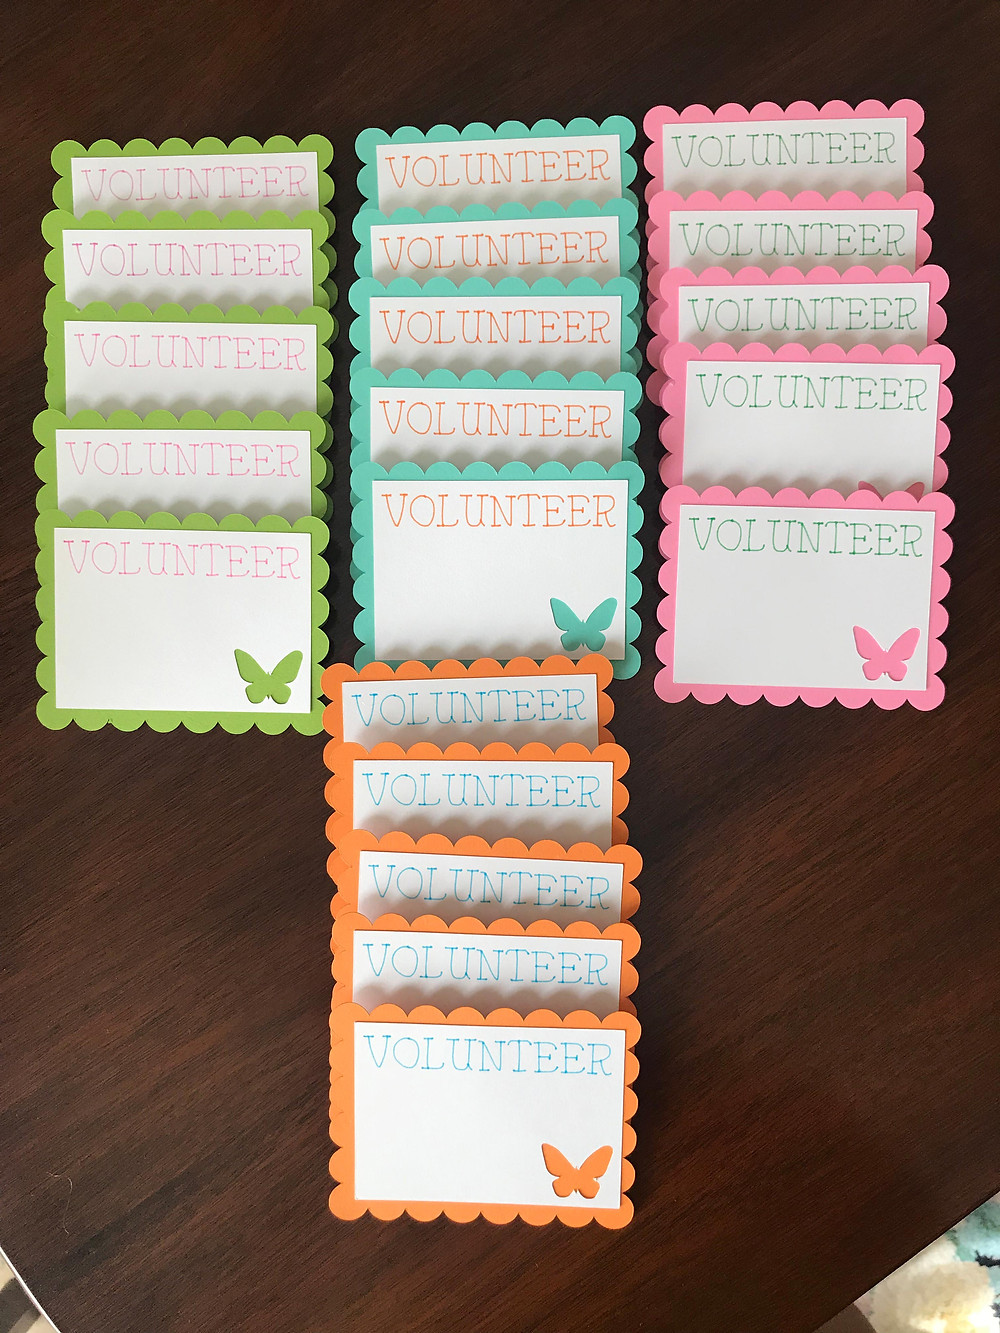 butterfly volunteer name tags